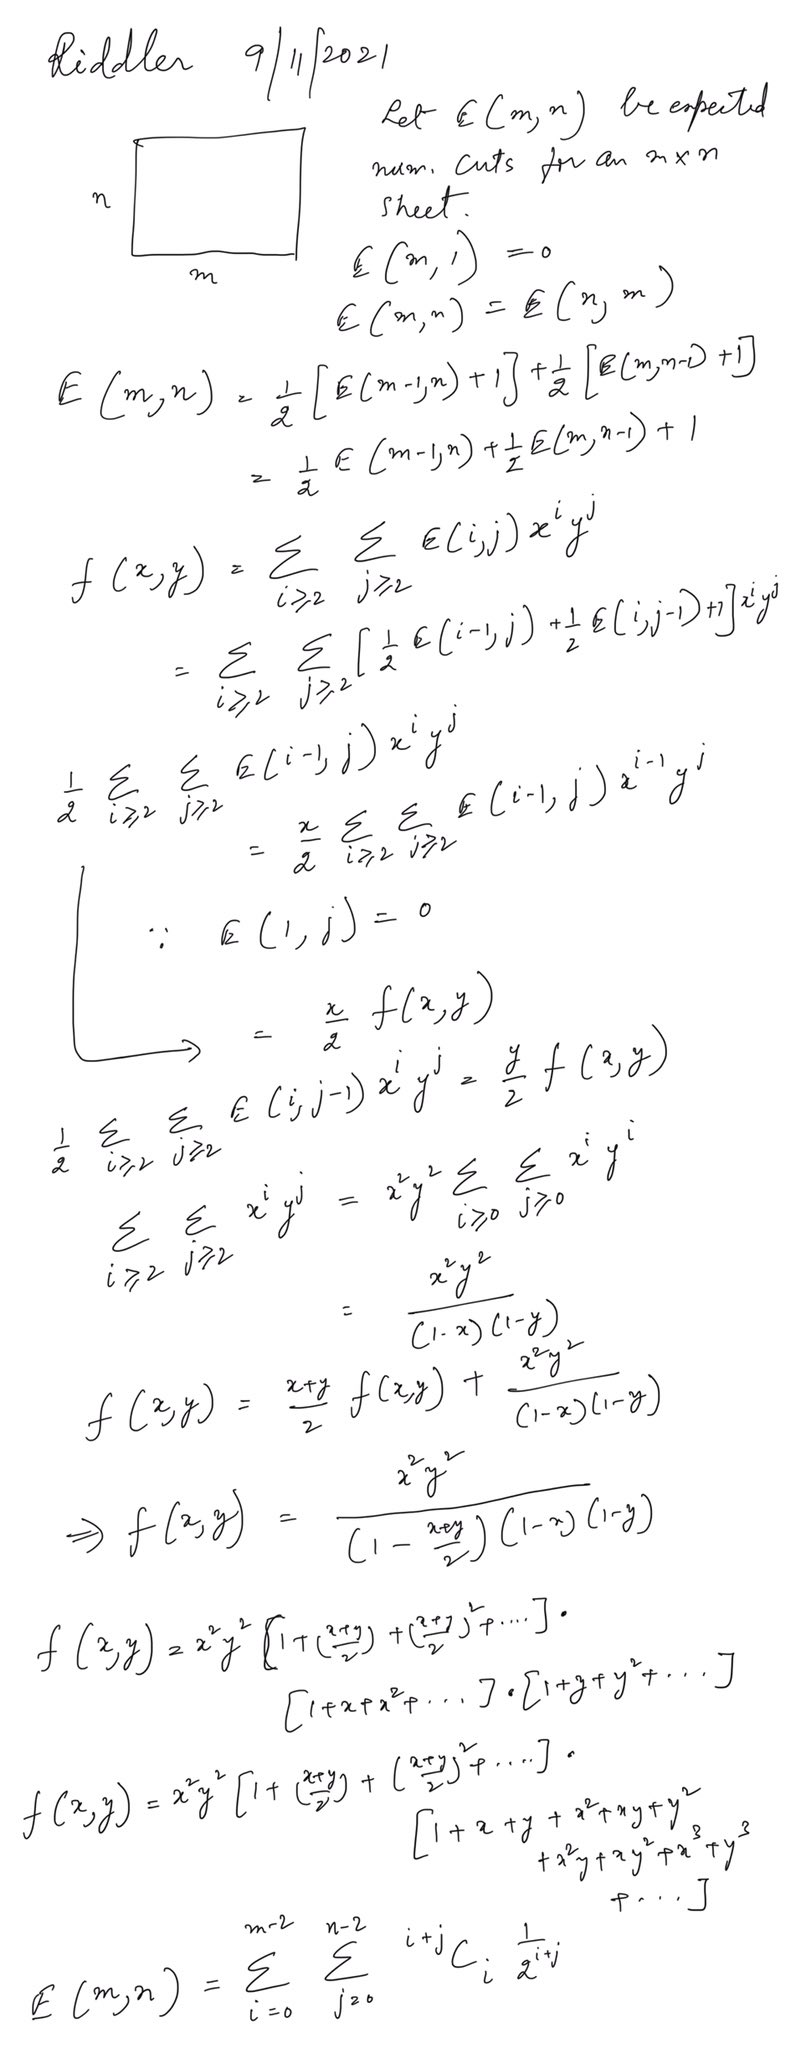 Derivation of a closed-form expression for E(m,n) using generating functions. E(m,n) is the sum from i = 0 to m-2 of the sum from j = 0 to n-2 of (i+j) choose i divided by 2^(i+j).